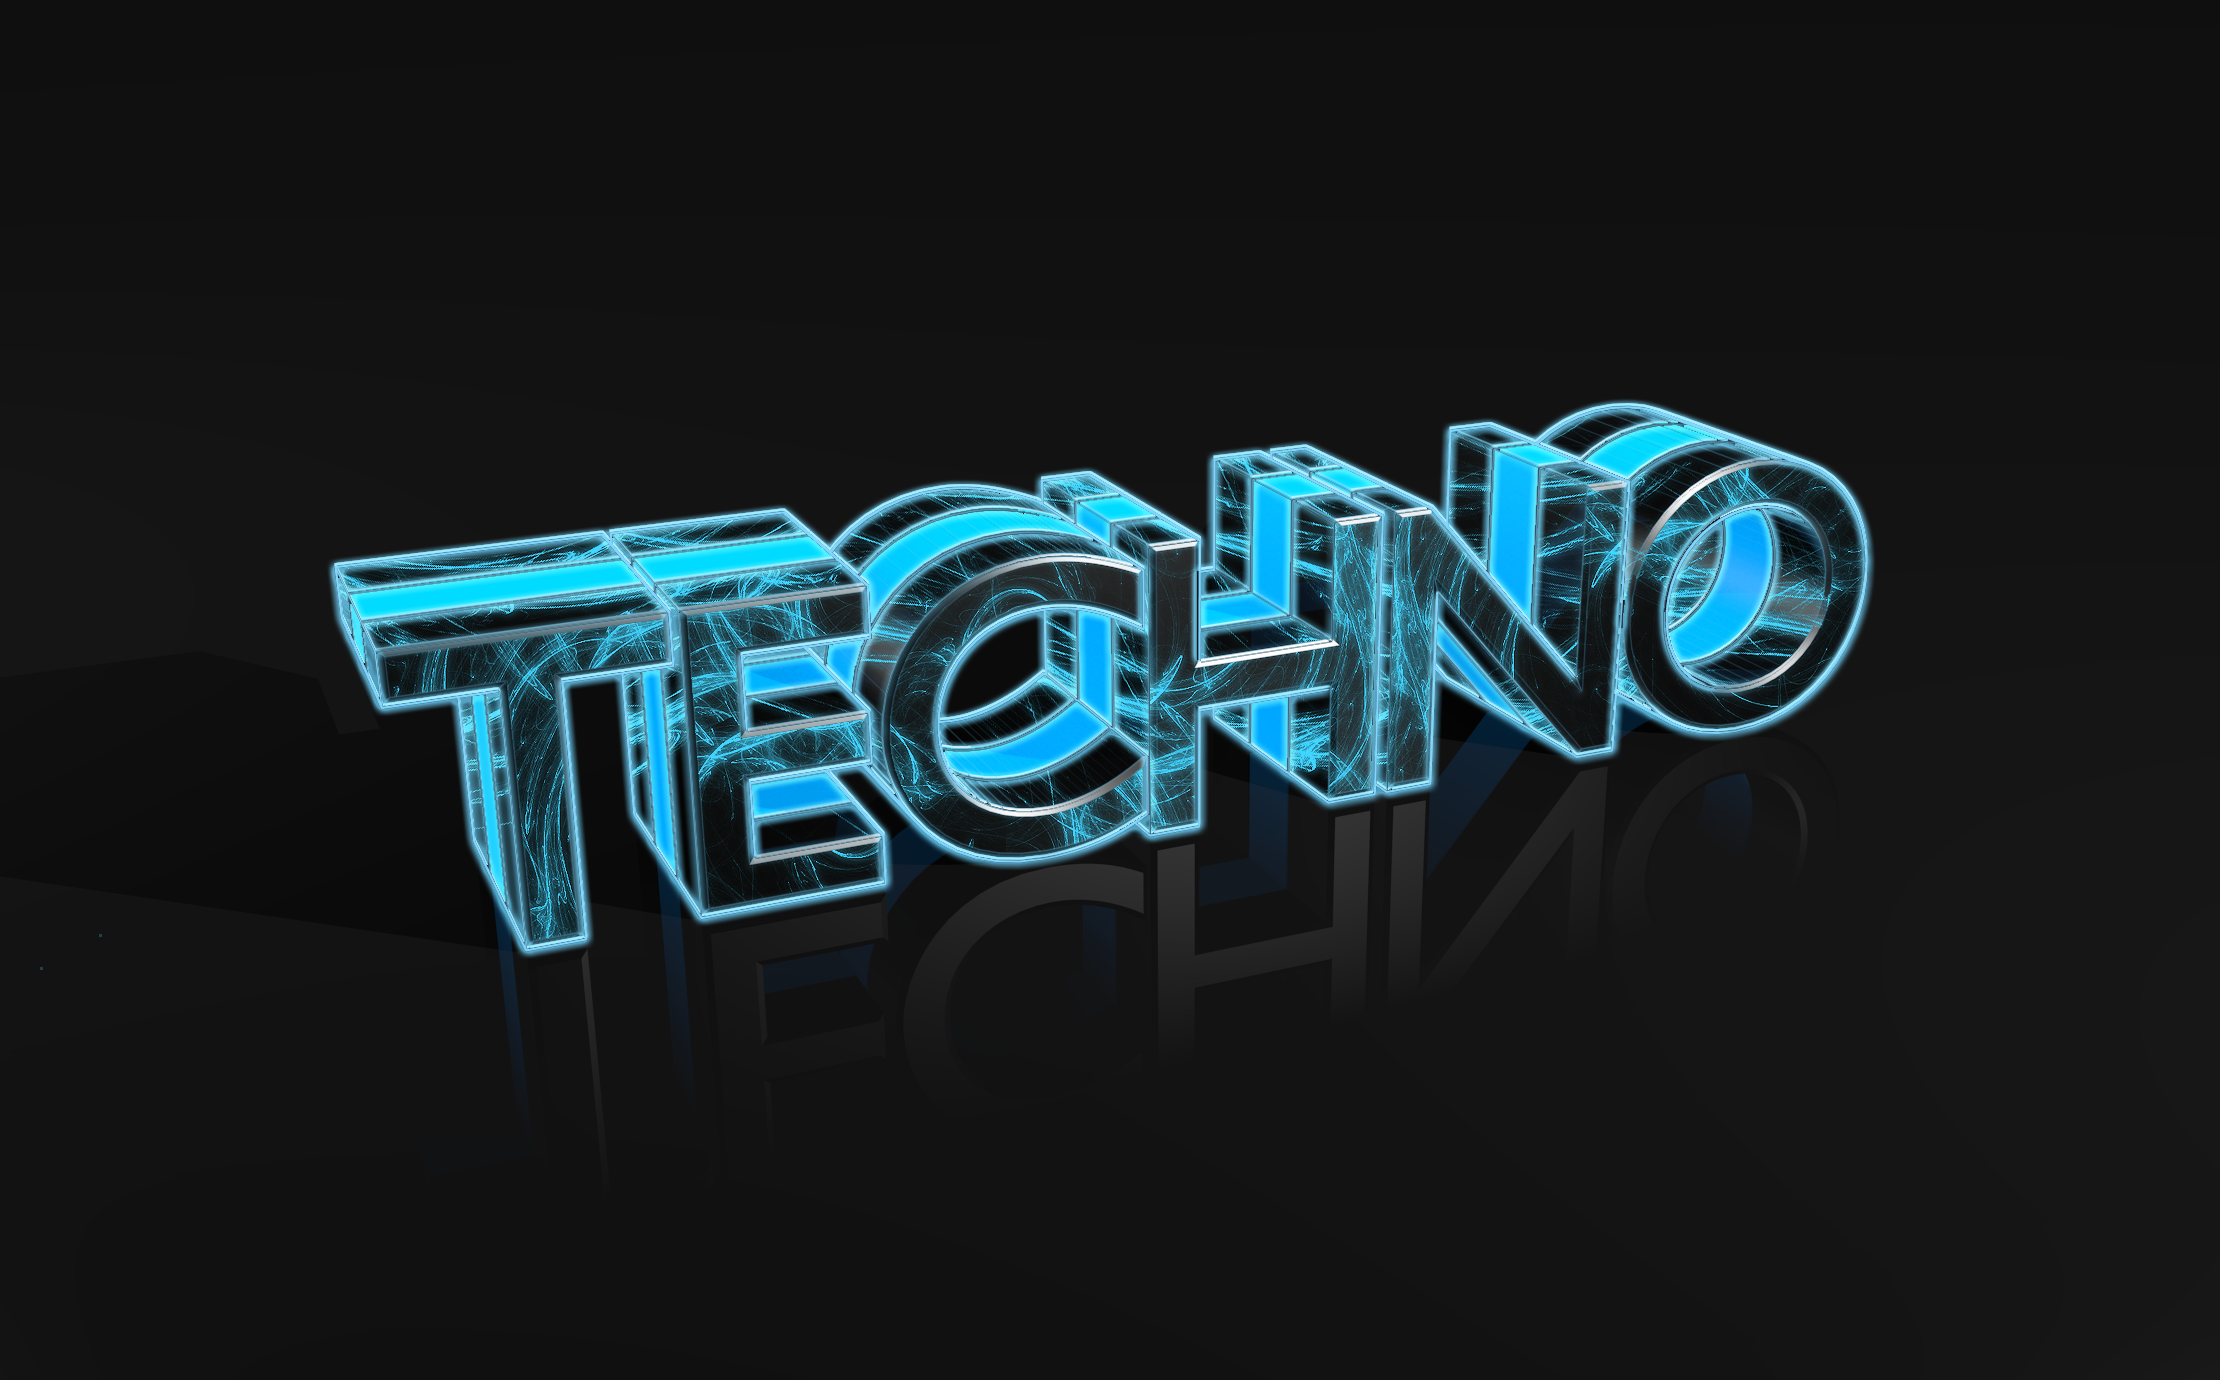 techno background by rjjonesy99 d4xigcapng 2220x1380